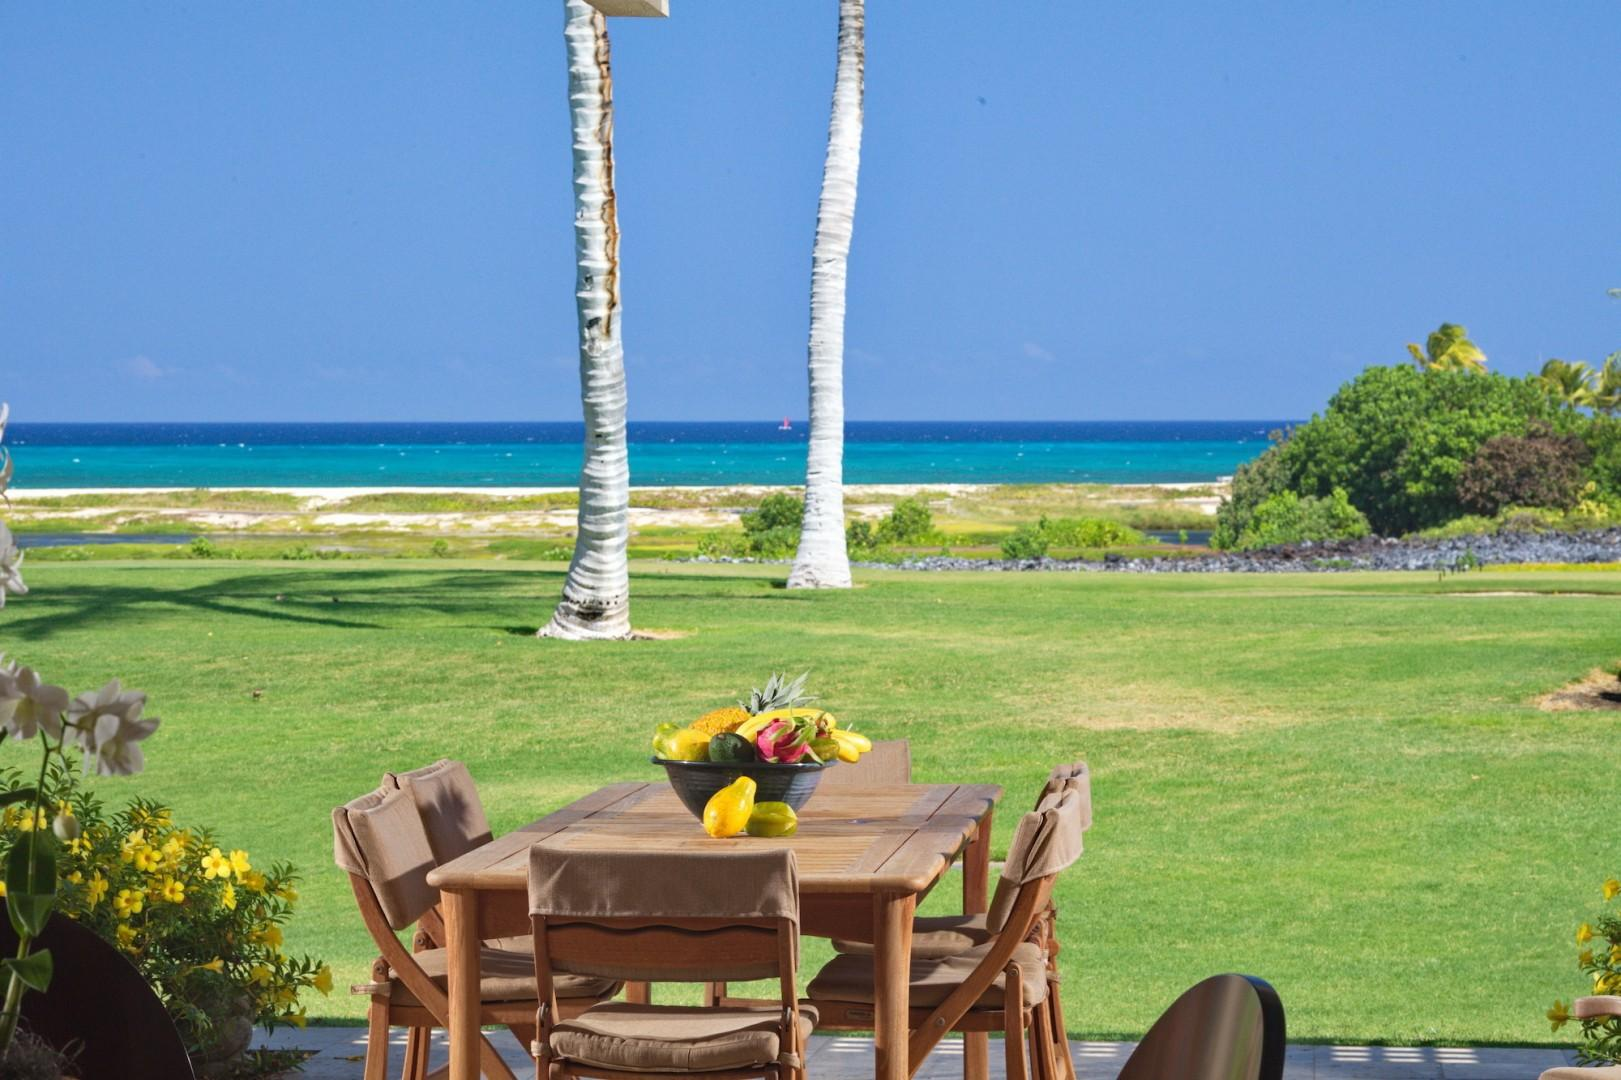 Al fresco dining seating for six on your lanai at the prime and coveted golf villa location with expansive views.